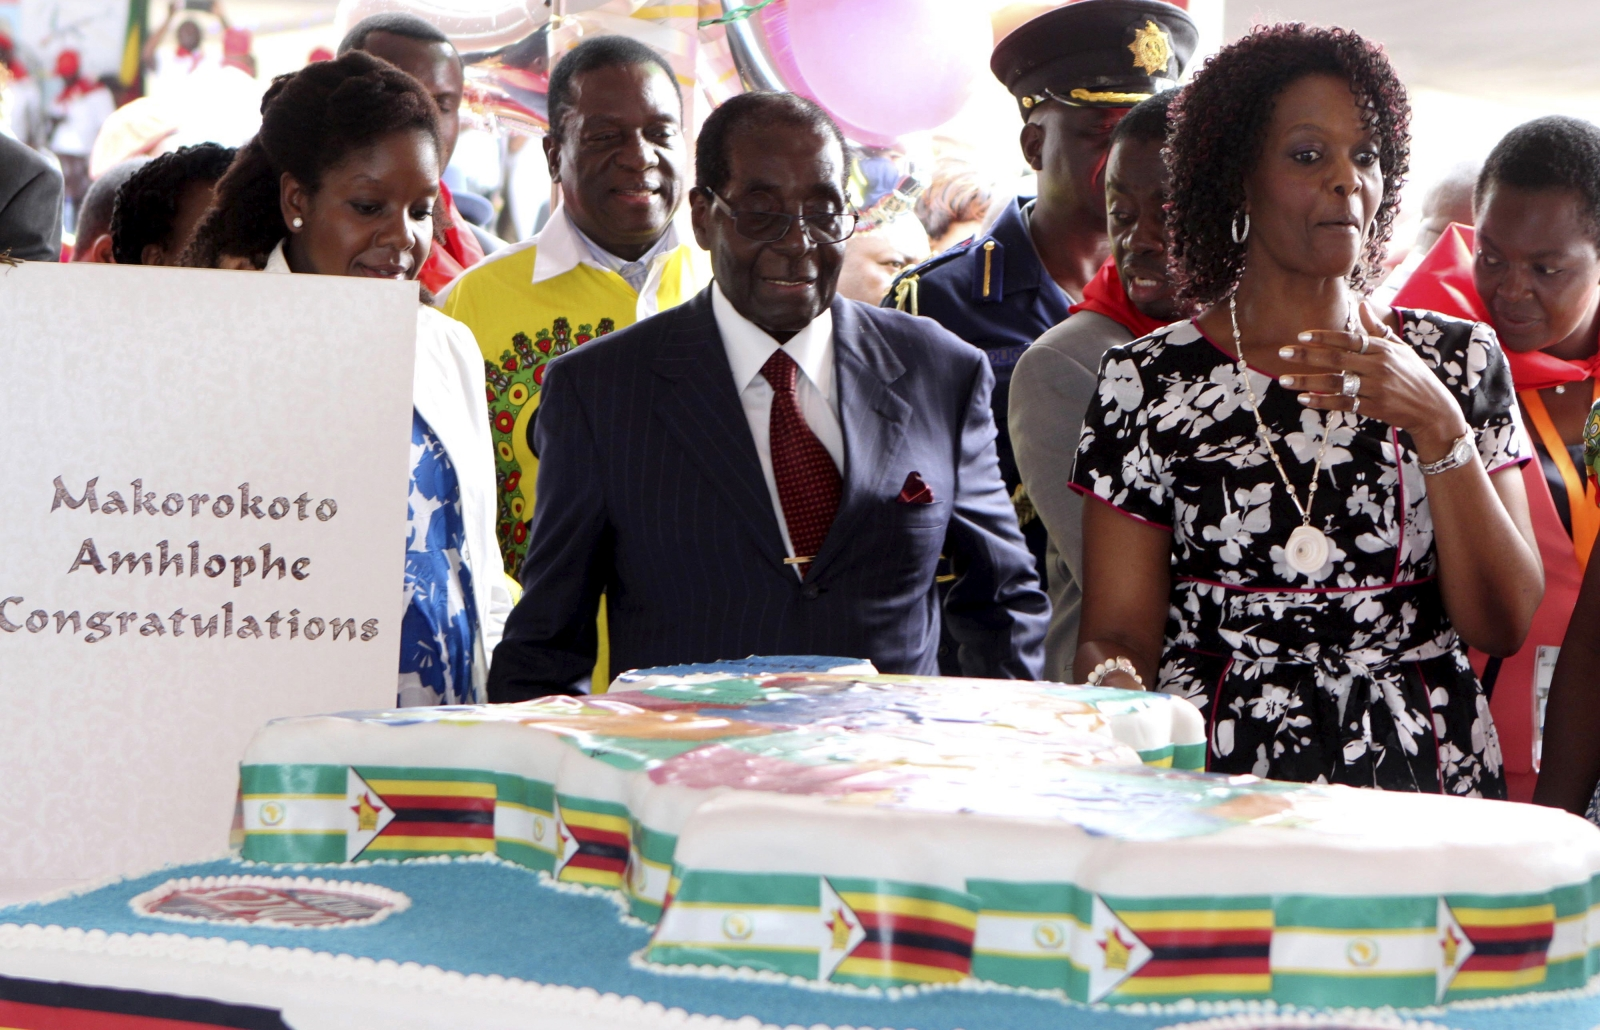 Mugabe's wife says he could run in election 'as a corpse'